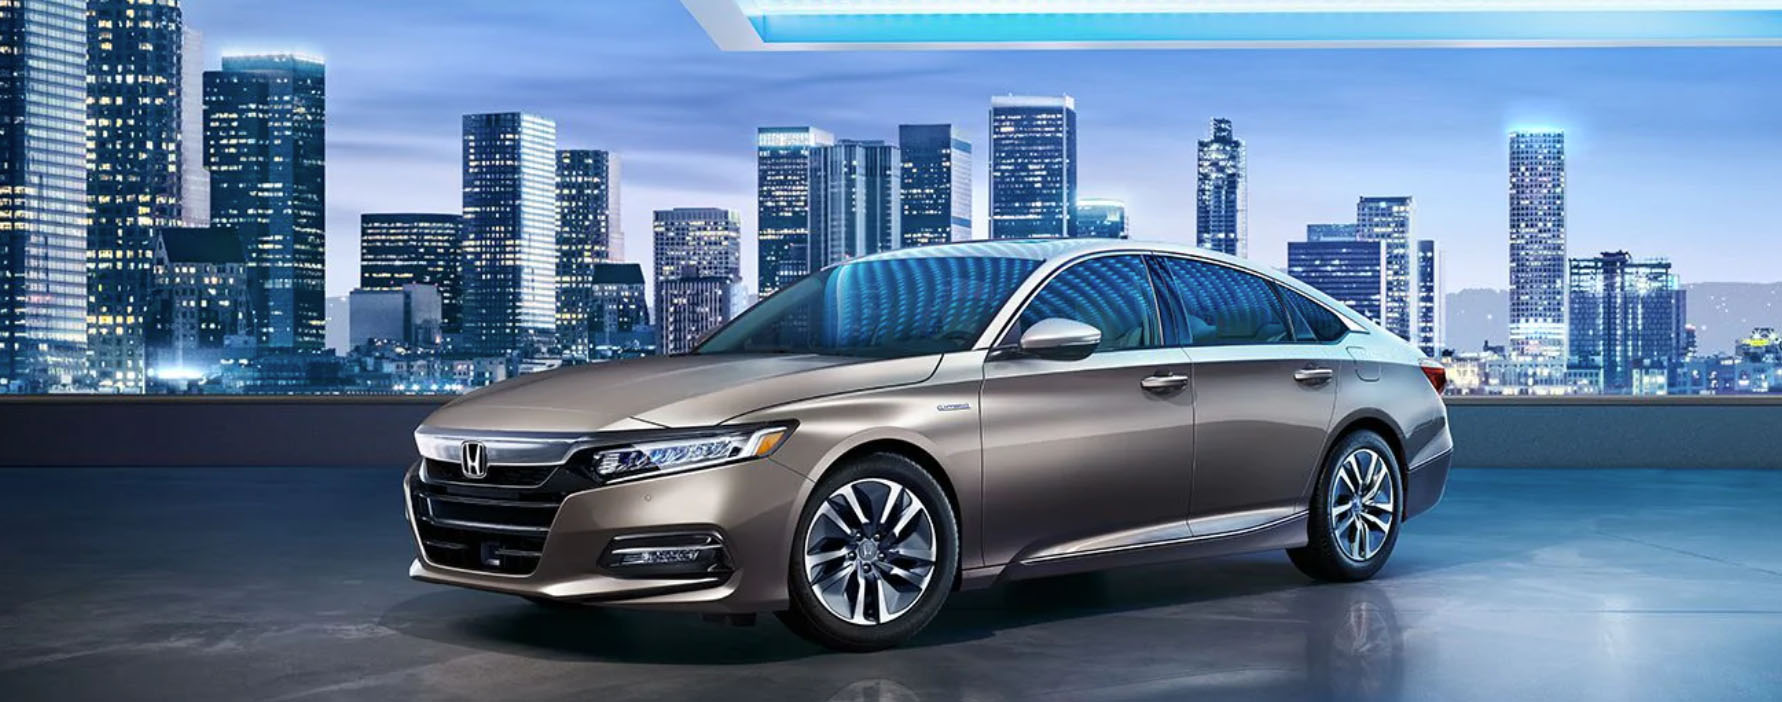 2020 Honda Accord For Sale in Boise